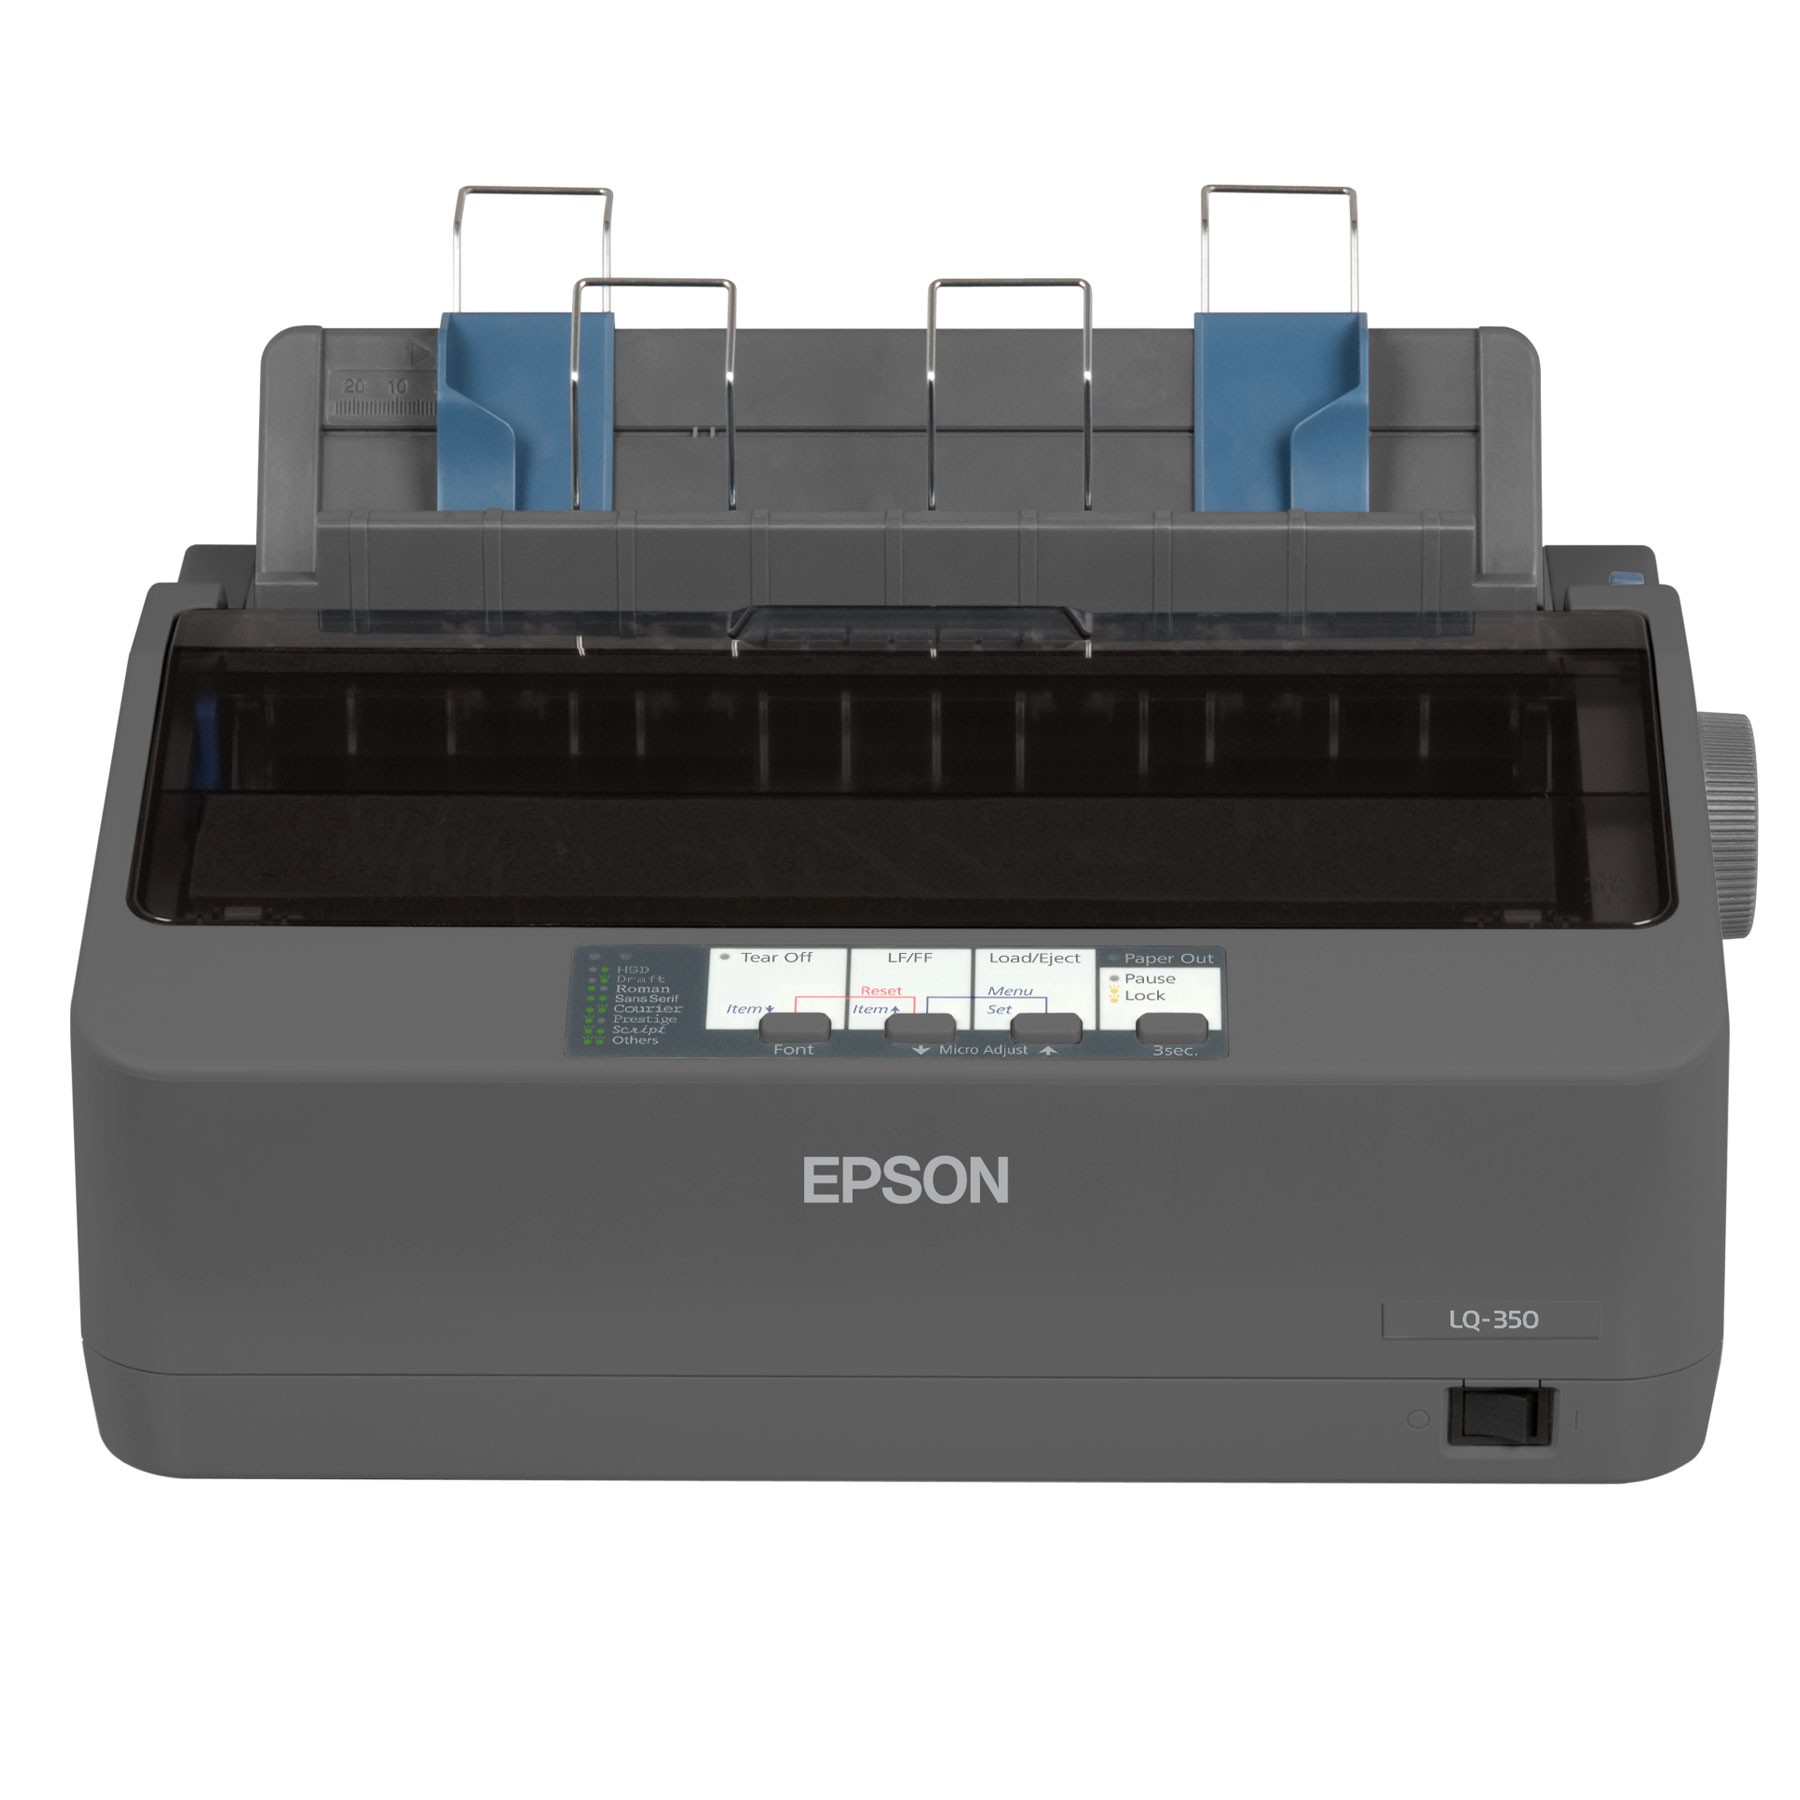 LQ-2080 IMPRIMANTE EPSON WINDOWS 7 GRATUITEMENT DRIVER TÉLÉCHARGER MATRICIELLE